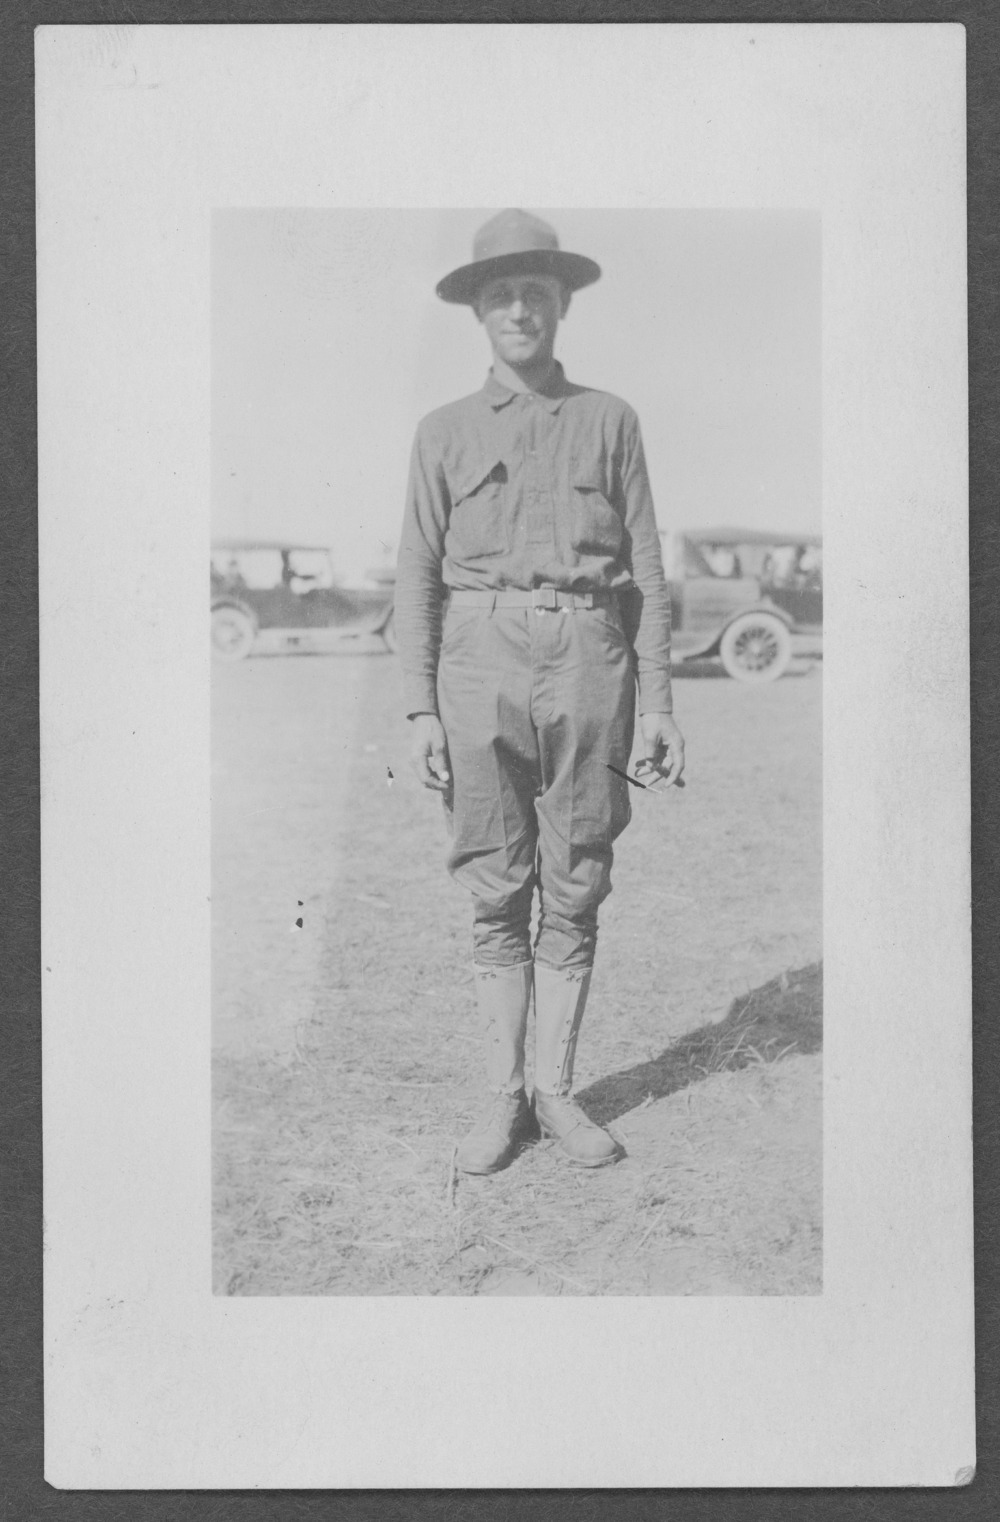 Ortwin Mueller, World War I soldier - 1